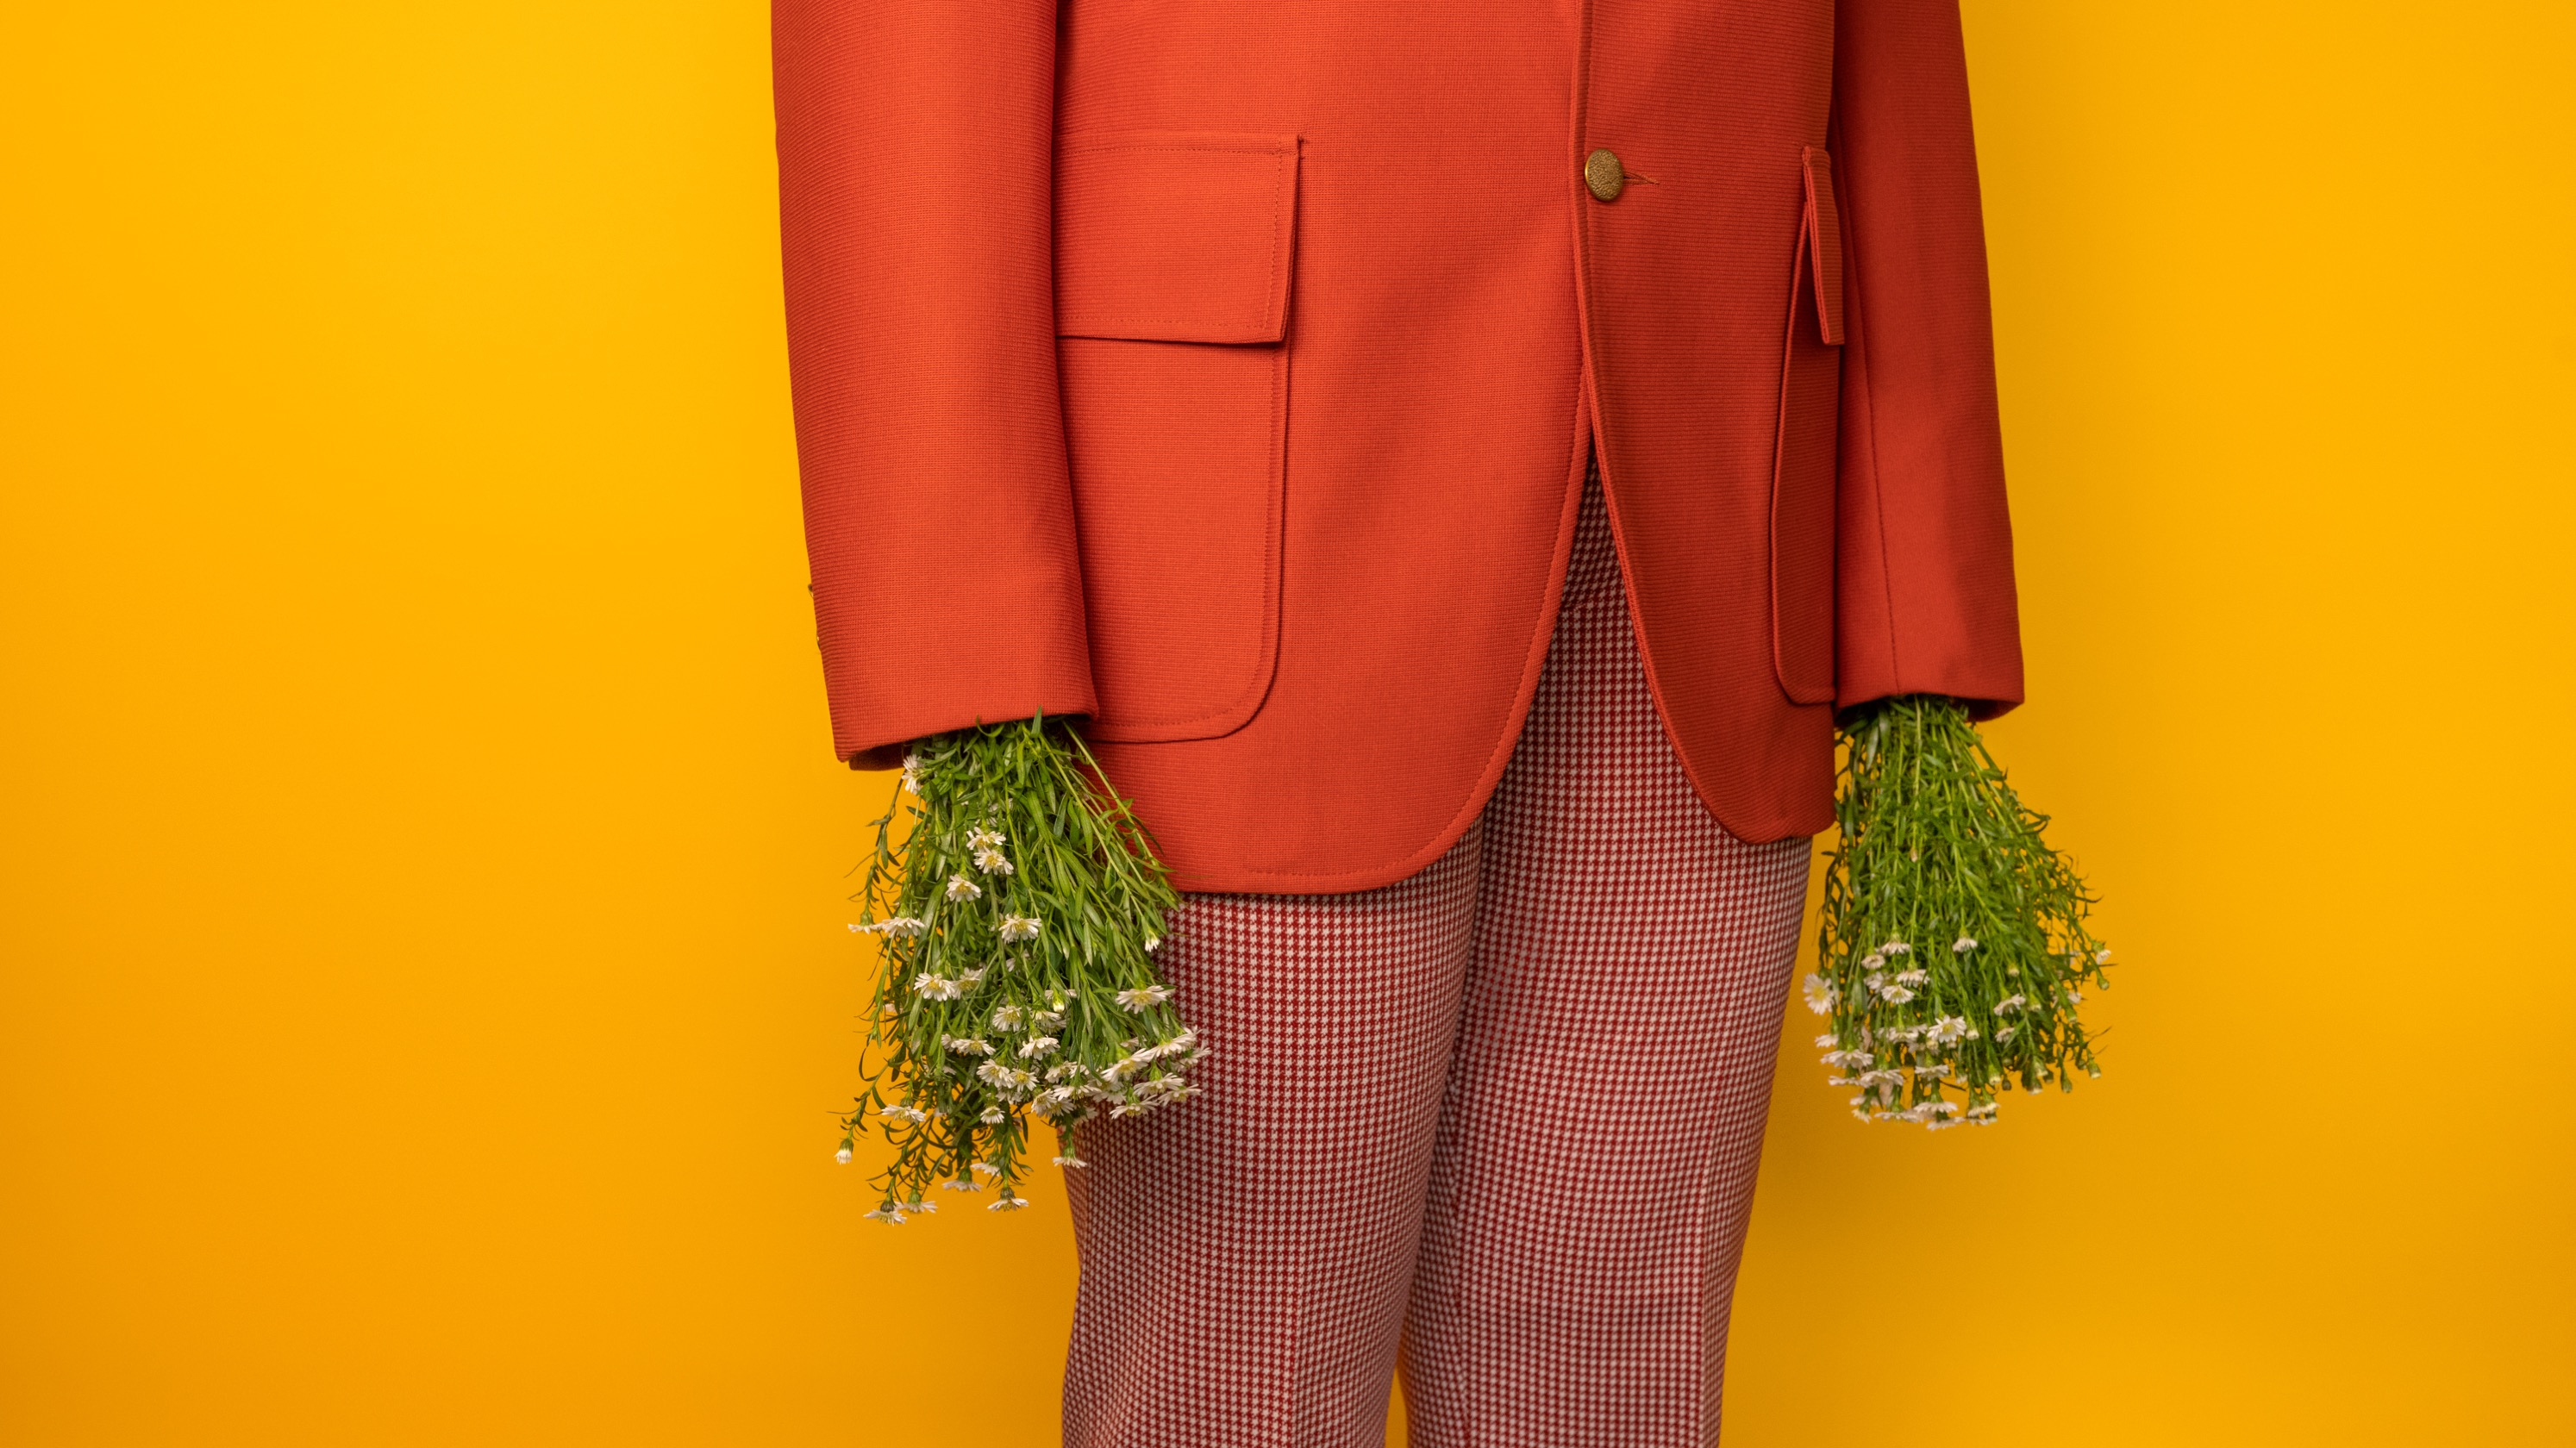 Close-up of a person's torso wearing a brightly-colored suit. Instead of hands, bushels of flowers stick out of the sleeves.